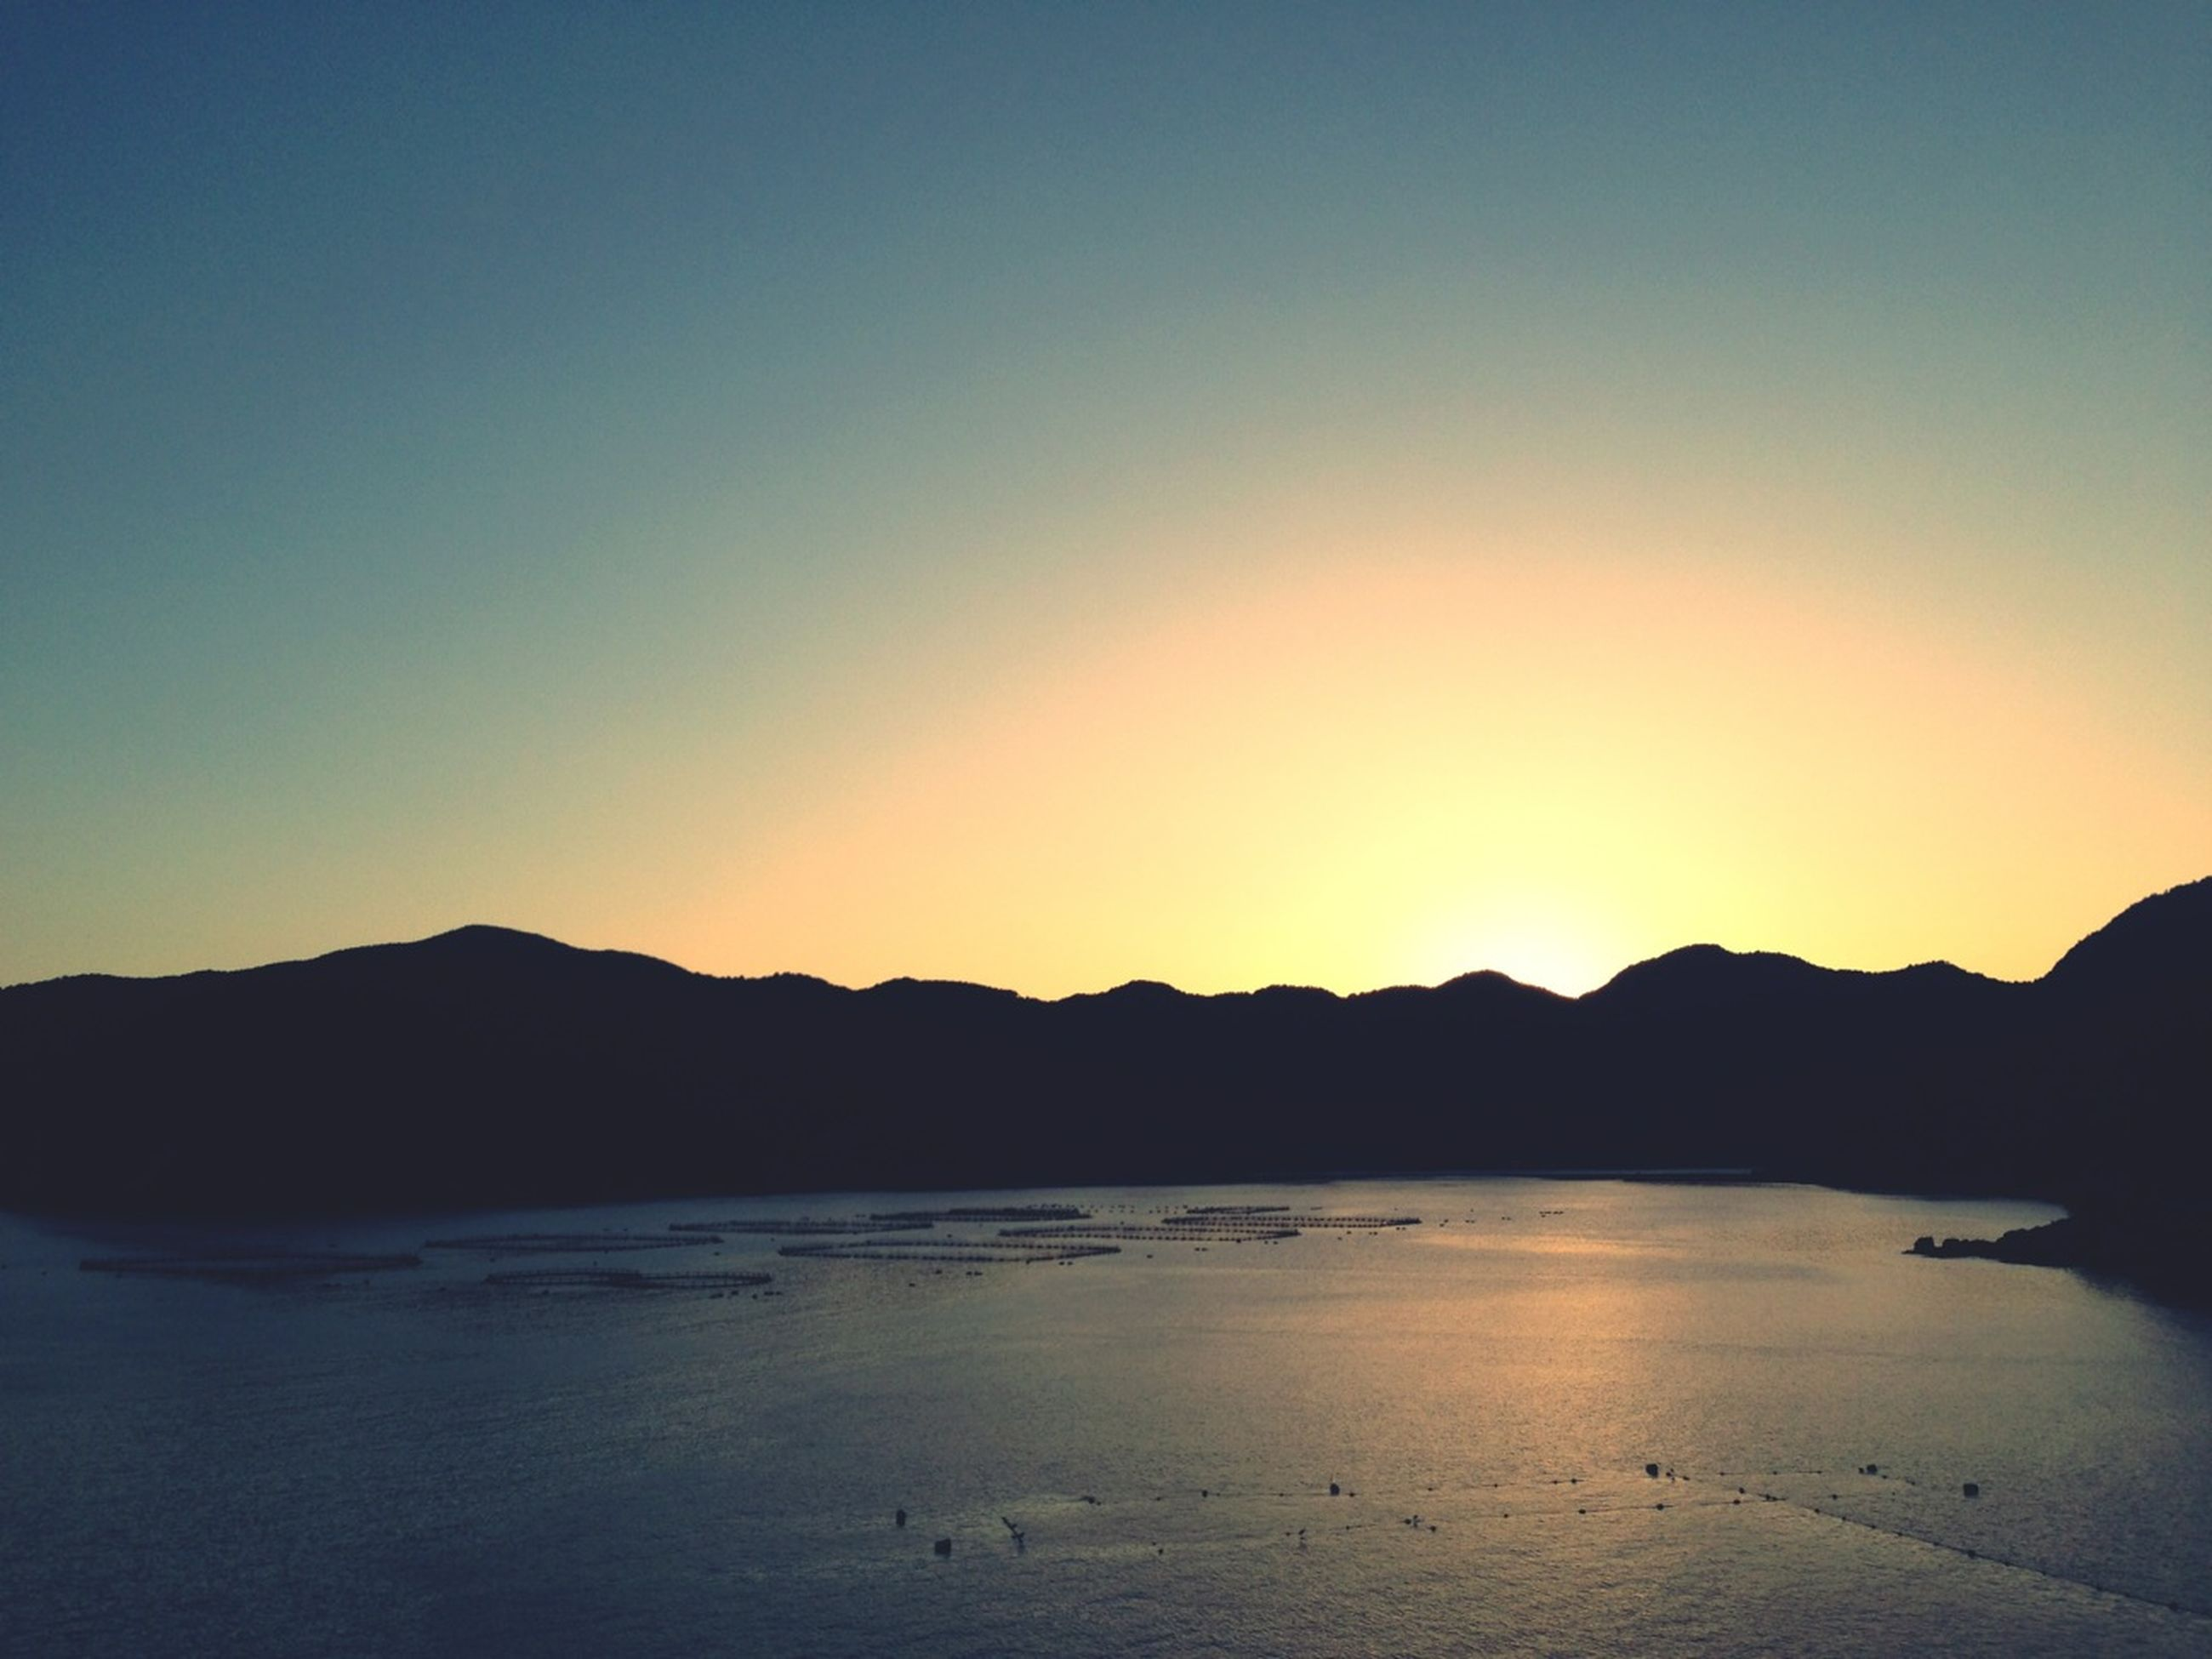 mountain, water, scenics, clear sky, tranquil scene, tranquility, sunset, copy space, mountain range, beauty in nature, silhouette, sea, nature, idyllic, lake, reflection, dusk, outdoors, sky, calm